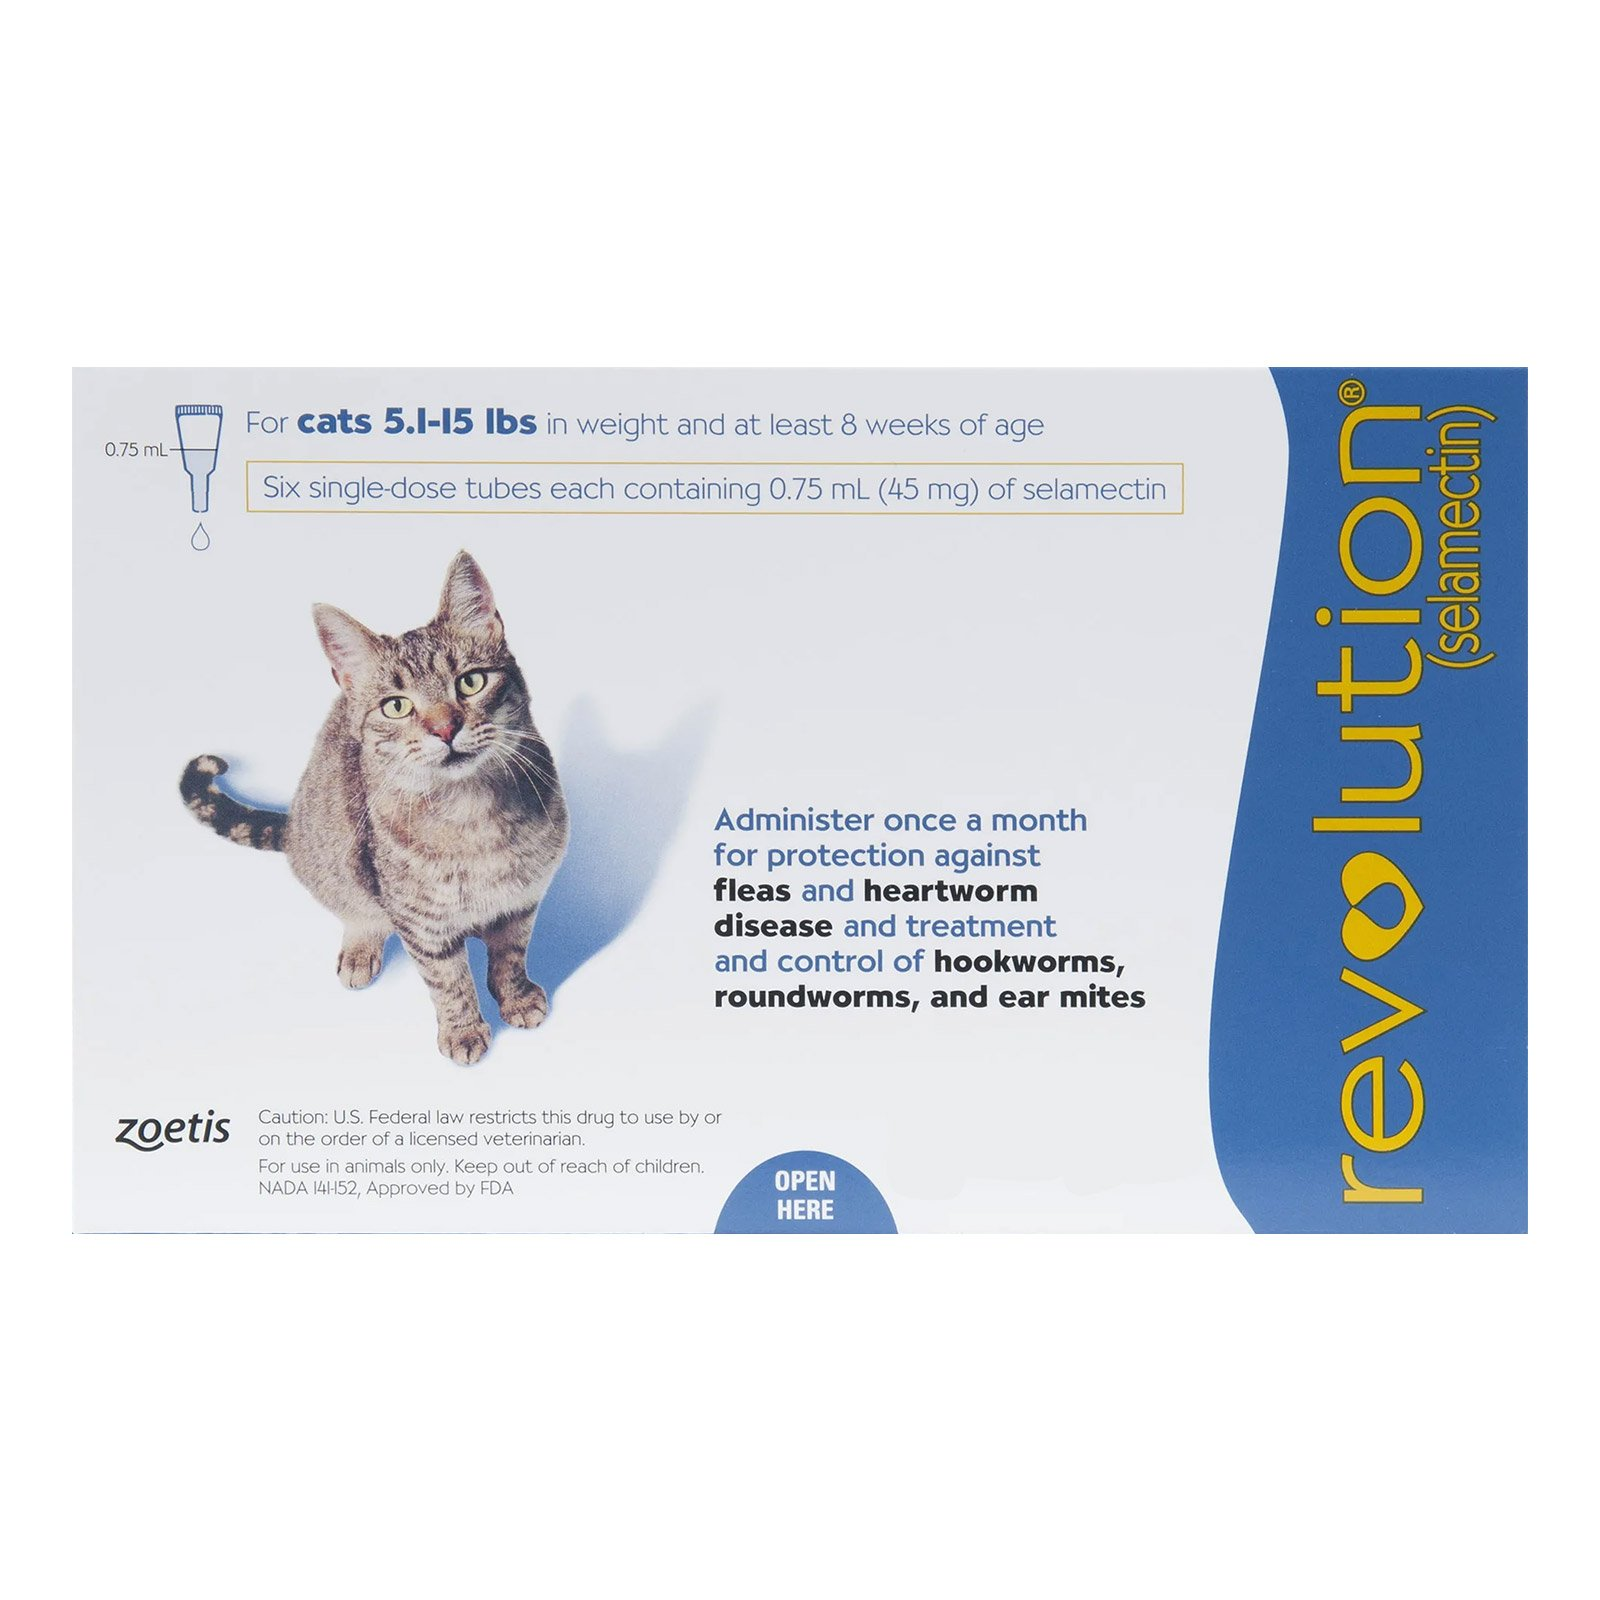 revolution-for-cats-5-15lbs-blue